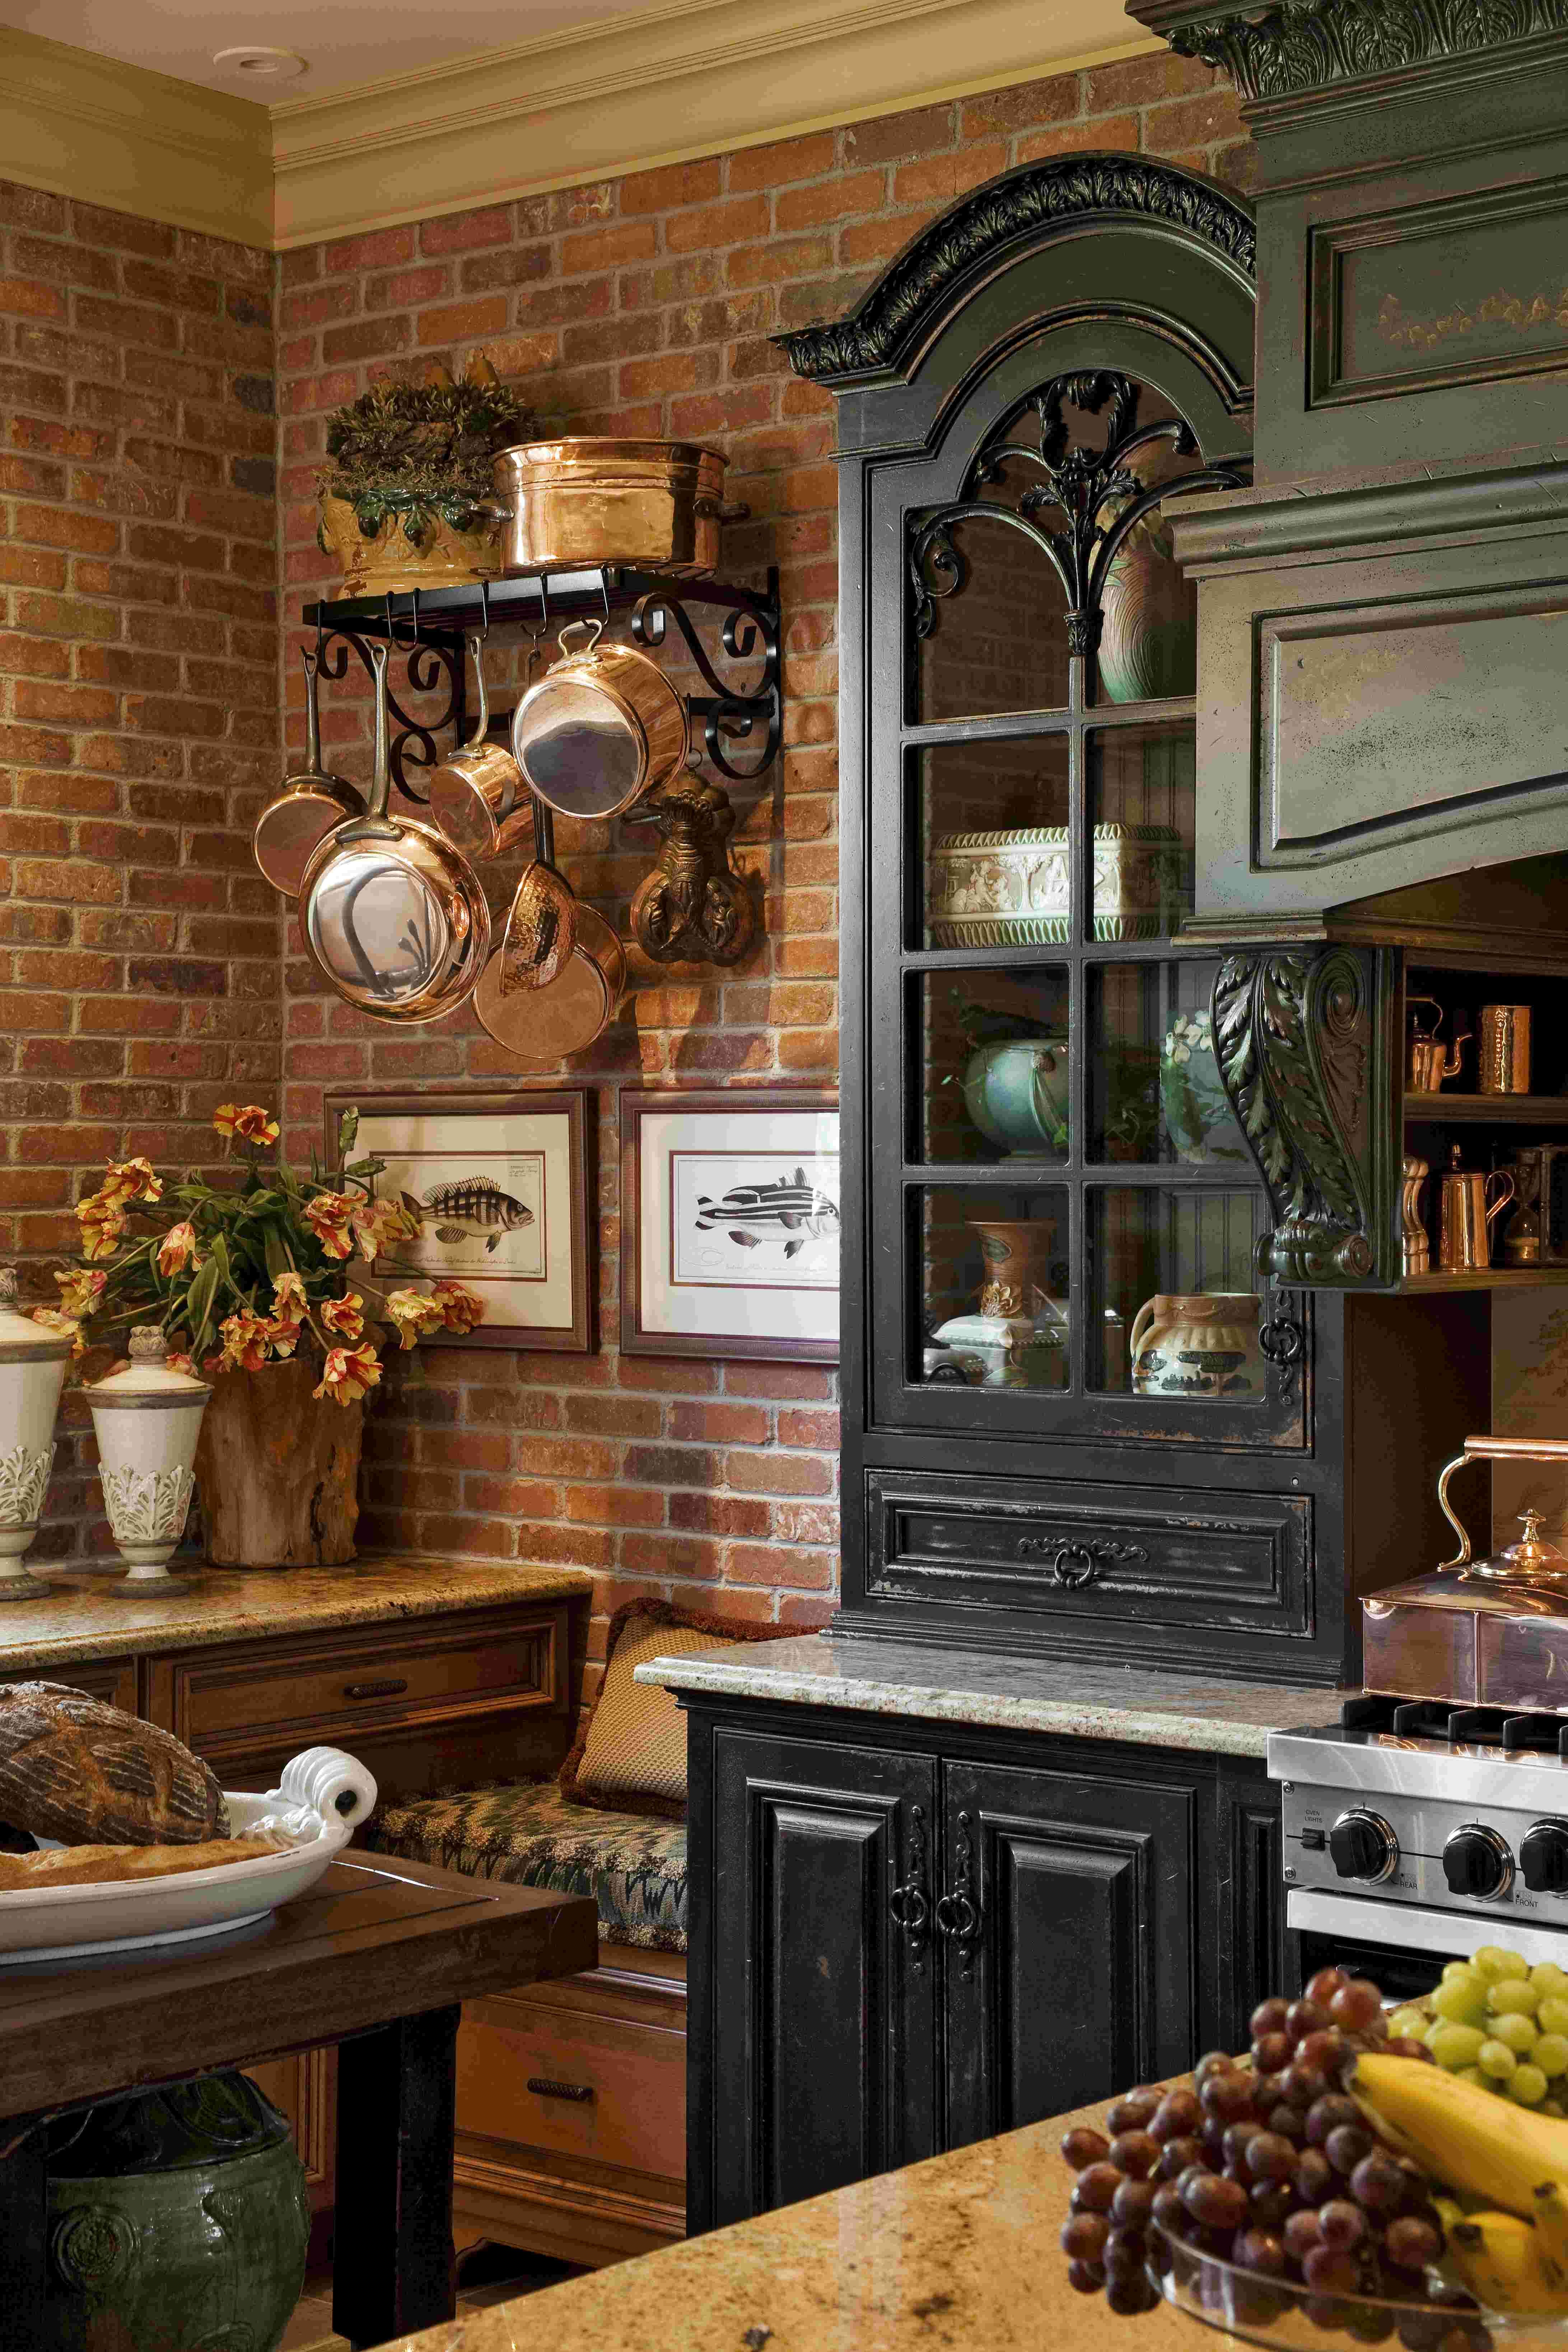 country interior design - 1000+ images about ountry French on Pinterest French country ...